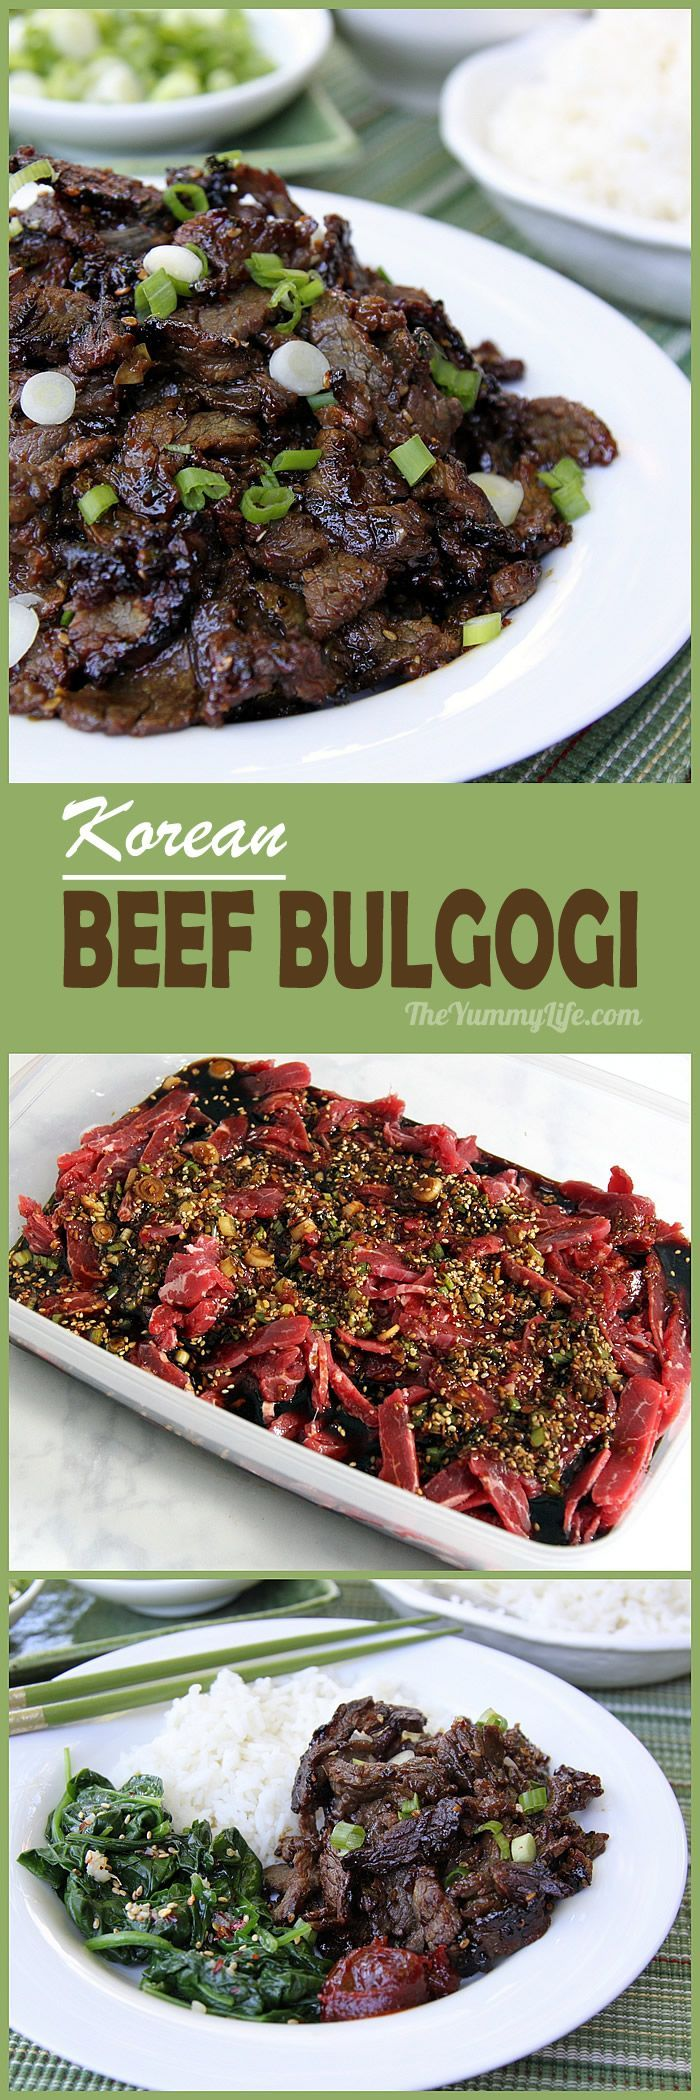 Korean Beef Bulgogi is an easy stir fry with amazing flavor and tender texture. Use it in rice bowls, bibimbap, Korean tacos, sandwiches and sliders.  From The Yummy Life #bulgogi #koreanrecipe #beefbulgogi #dinnerideas